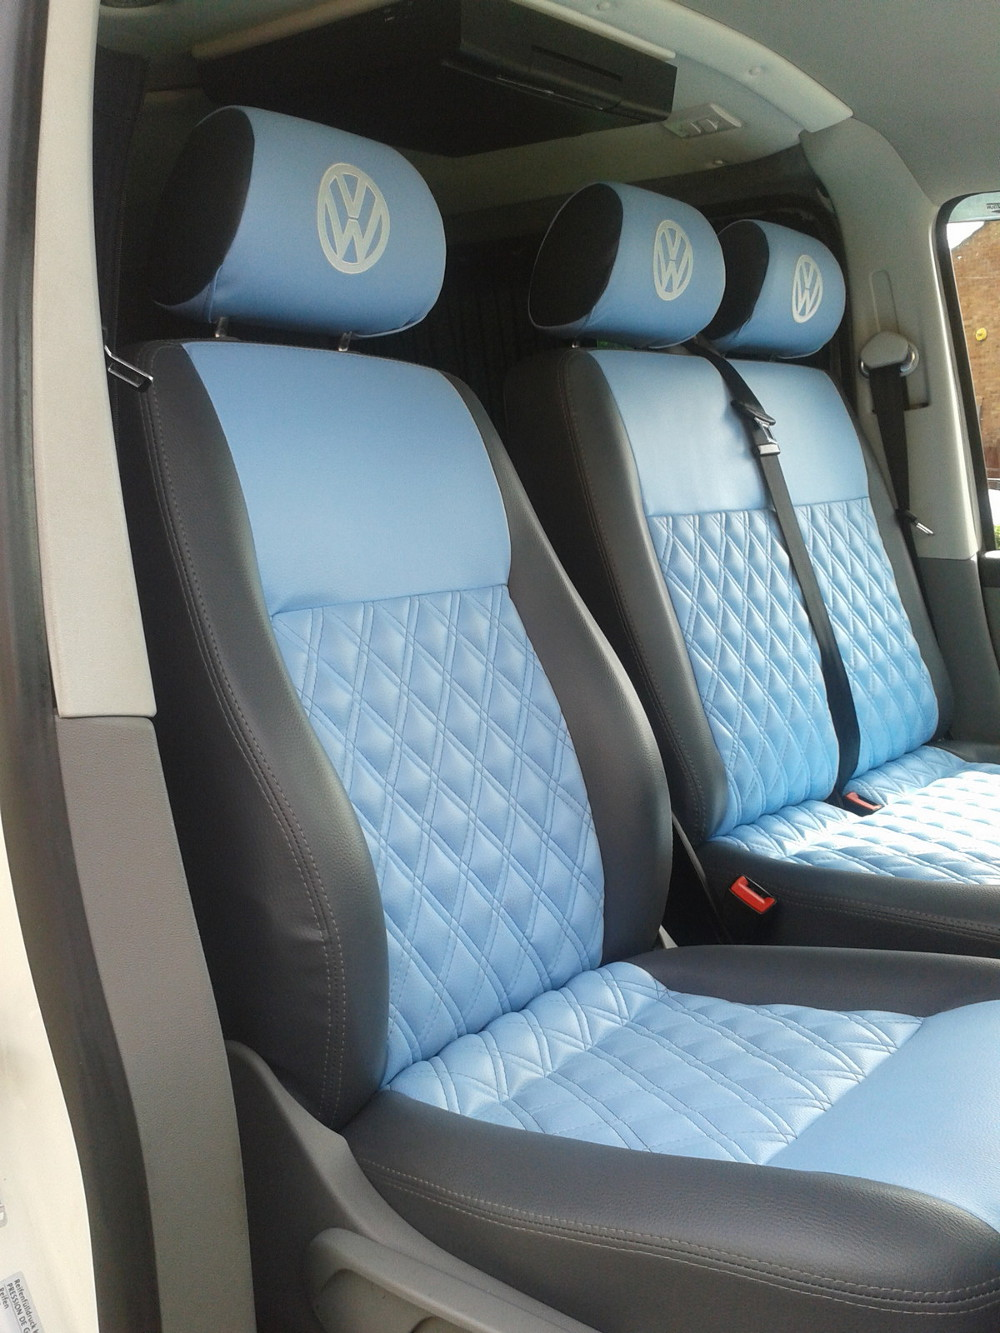 Volkswagen T5 Front Single Seat And Double Bench Re Upholstered In Grey With Blue Vinyl Bentley Diamond Stitched Centre Panels